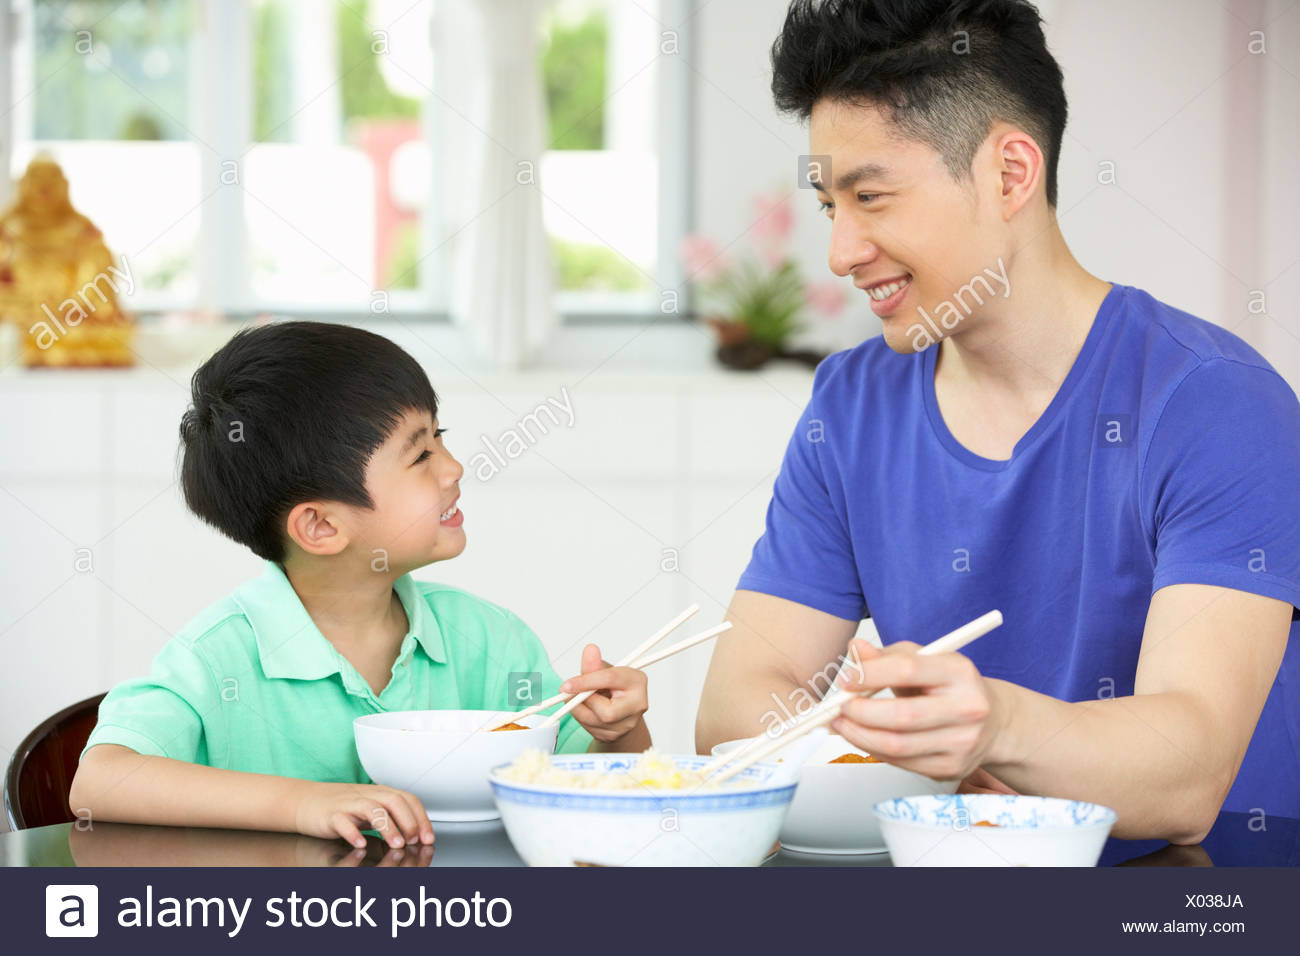 Image result for images of father and son eating noodles together